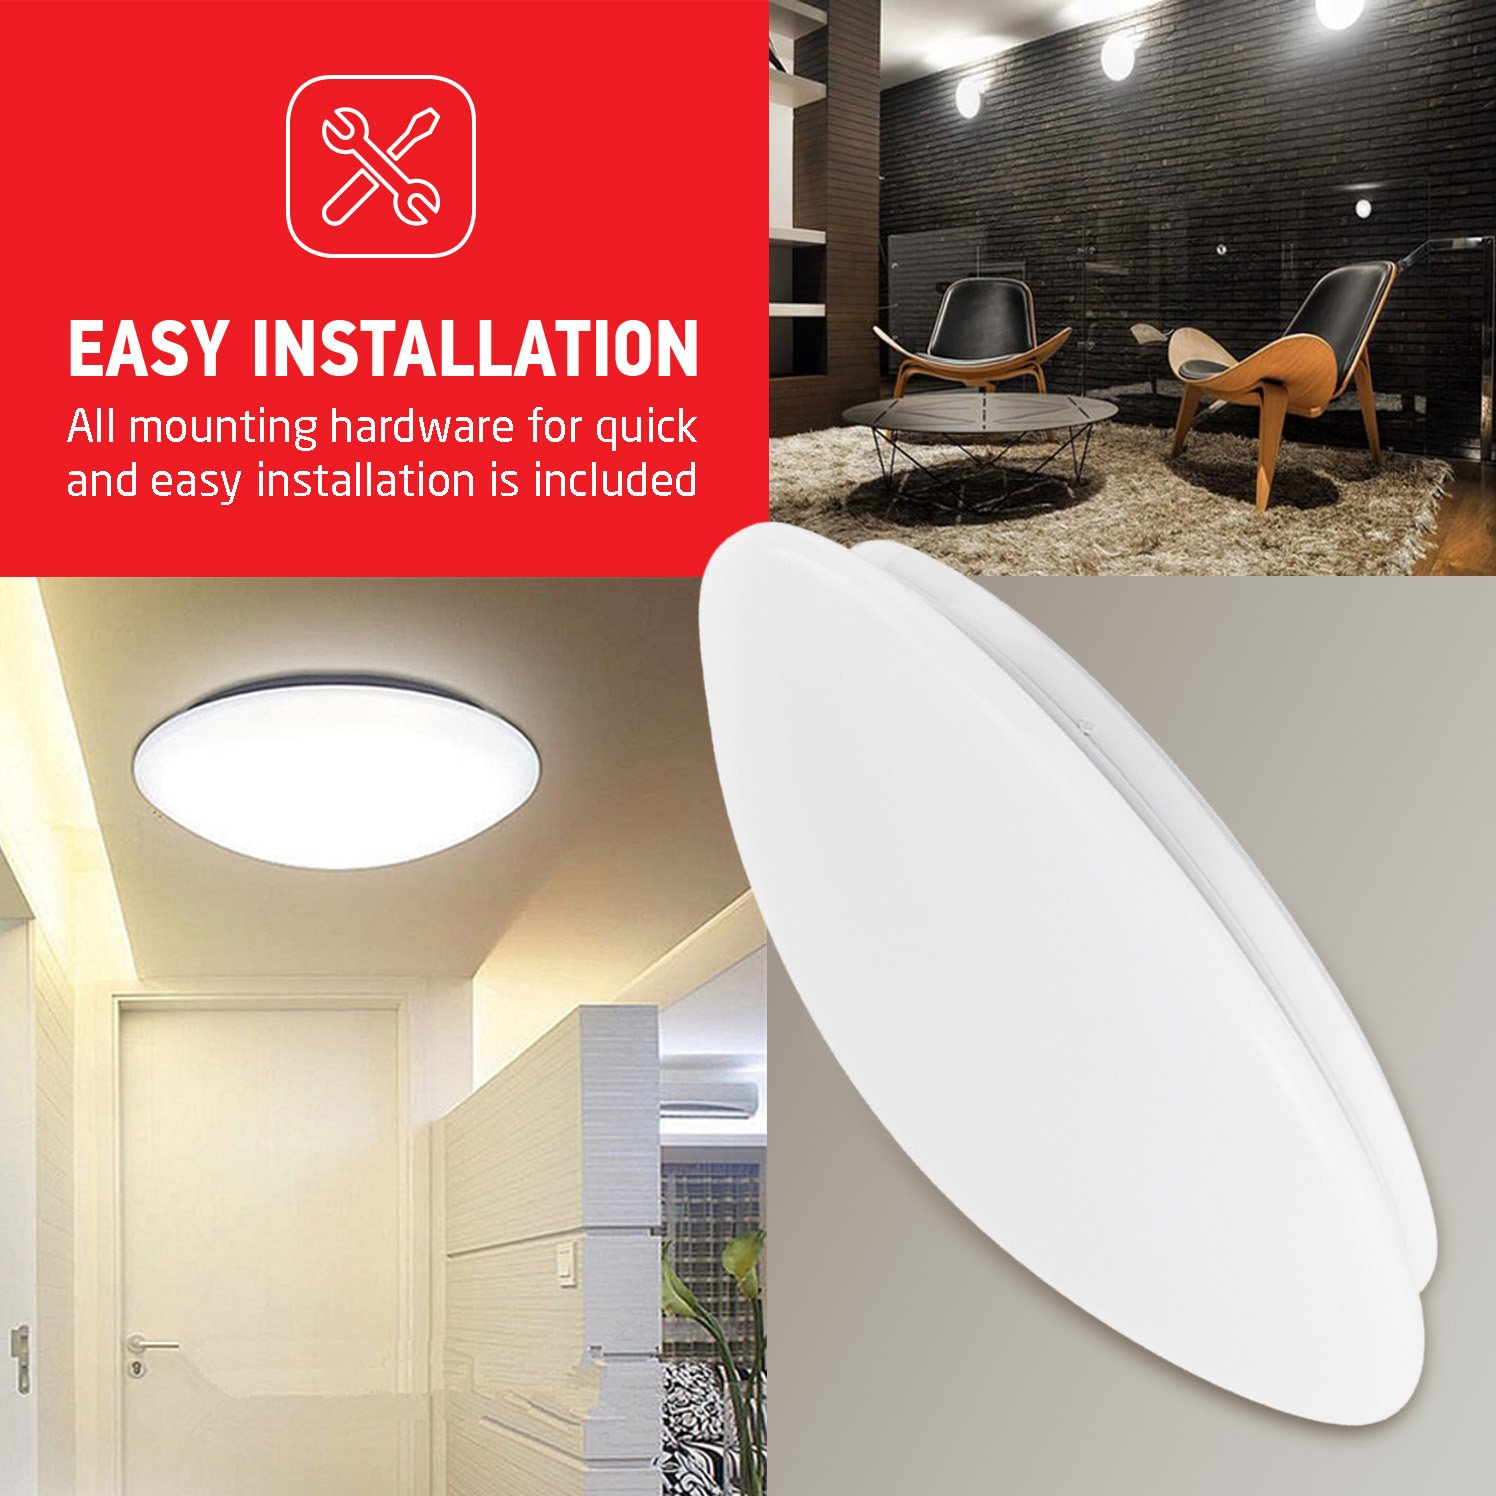 OSTWIN 11-inch LED Flush mount Ceiling Light MS Series 20W (100 Watt equivalent), Dimmable, 5000K (Daylight), 1864 Lumens, White Finish with Acrylic shade, ETL and ENERGY STAR listed by OSTWIN (Image #6)